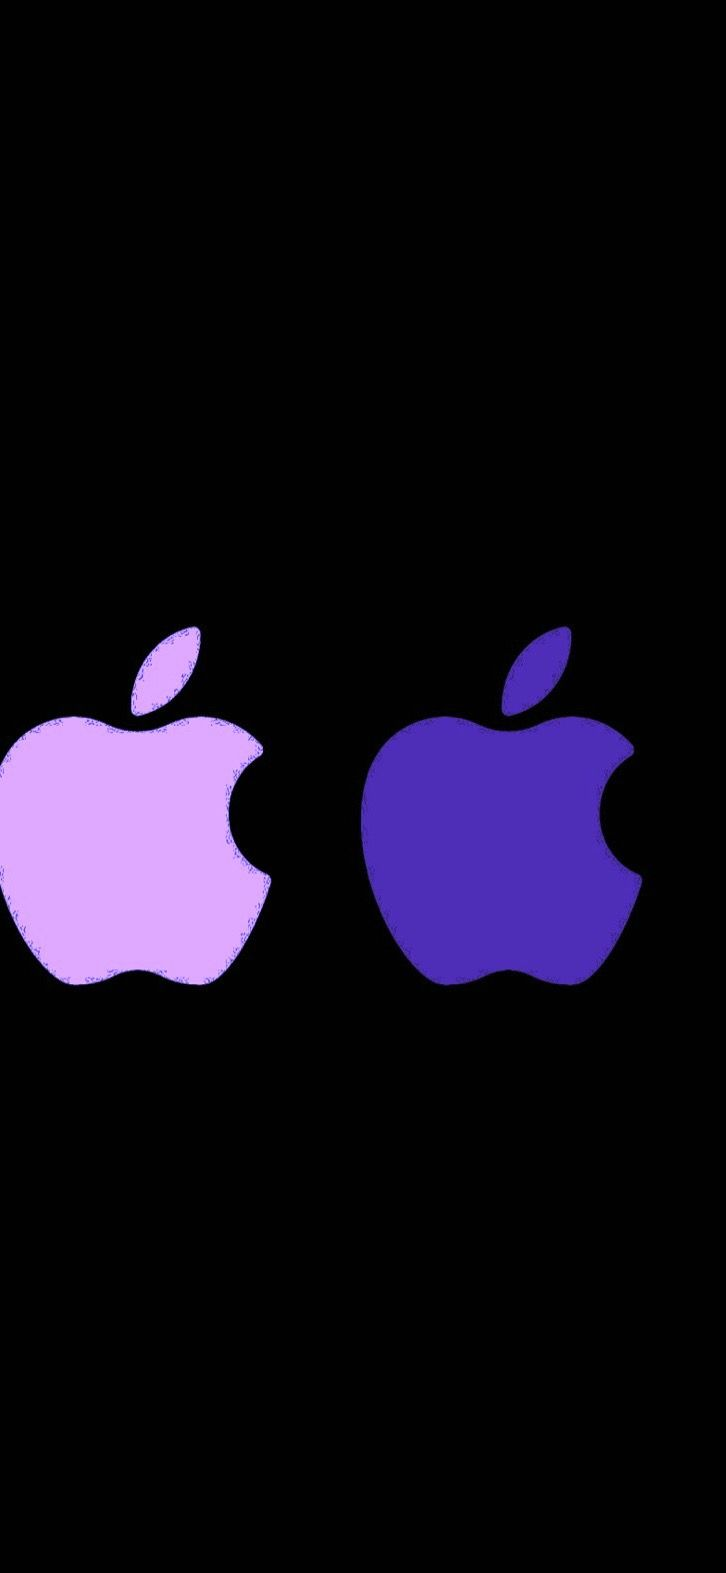 Ios13 Iphonewallpaper Apple Logo Colorful Lockscreen Apple Logo Wallpaper Iphone Apple Iphone Wallpaper Hd Apple Logo Wallpaper